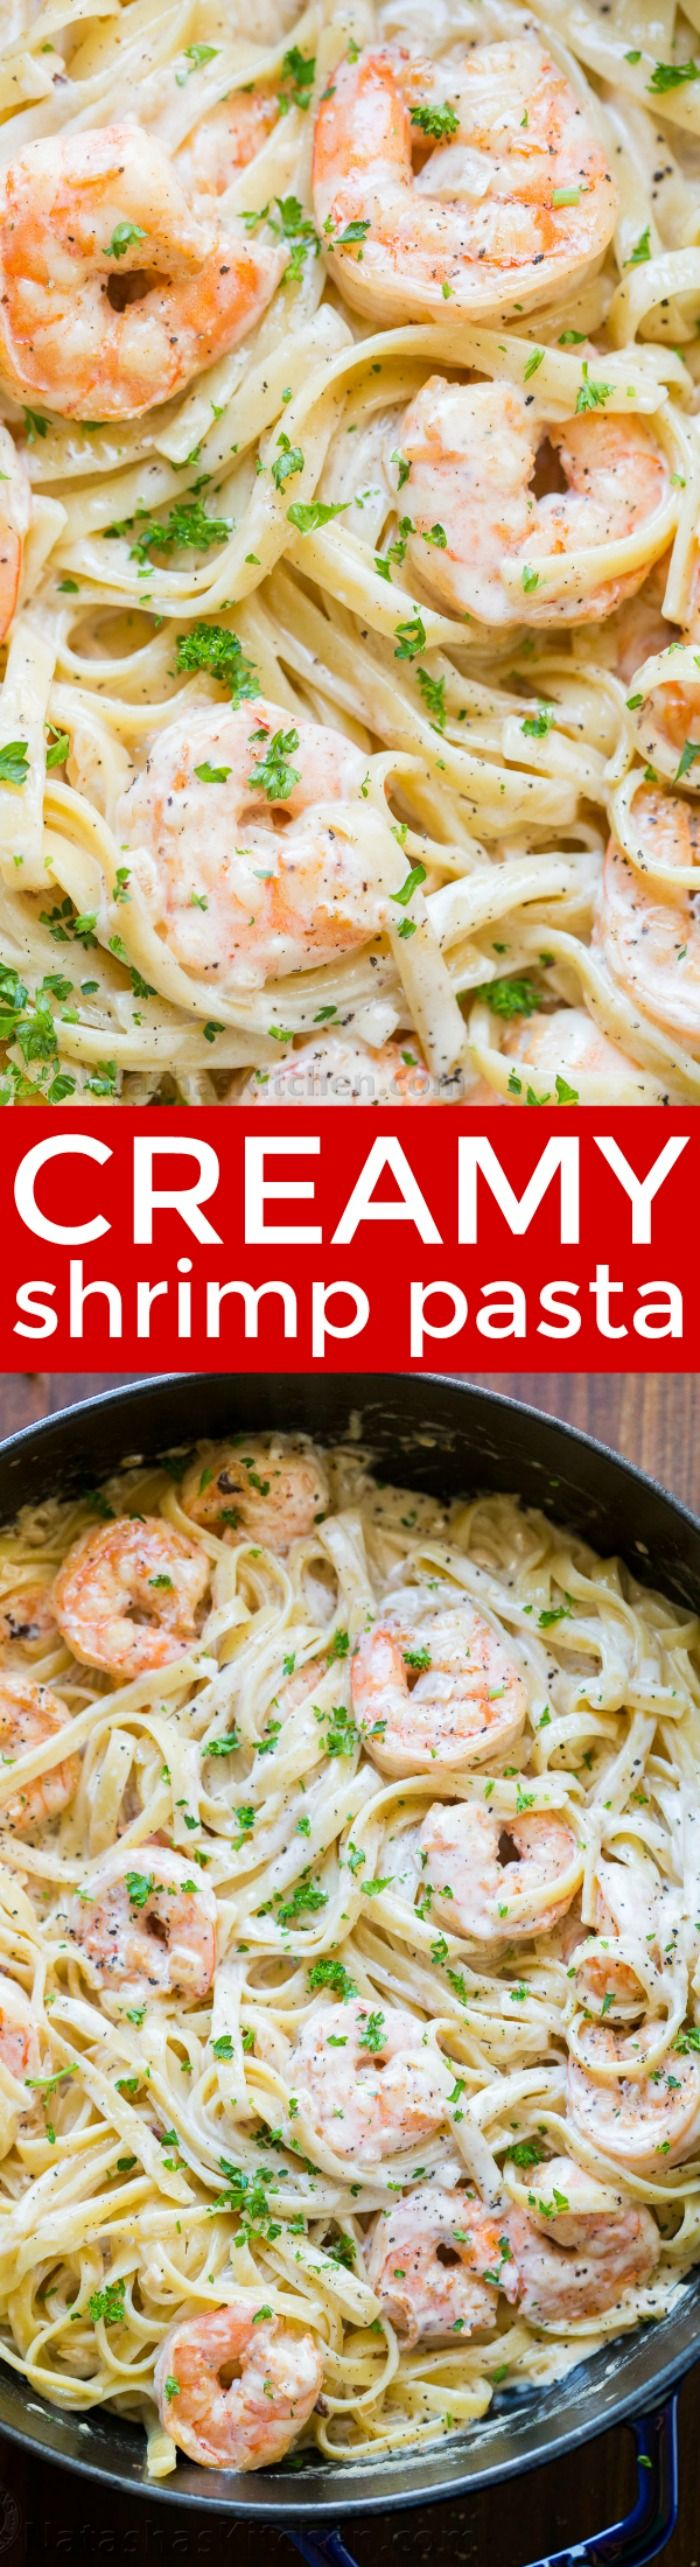 Creamy Shrimp Pasta Reminds Me Of My Favorite Dish At Olive Garden With Plump Juicy Shrimp And The Easies In 2020 Creamy Shrimp Pasta Shrimp Pasta Shrimp Pasta Recipes